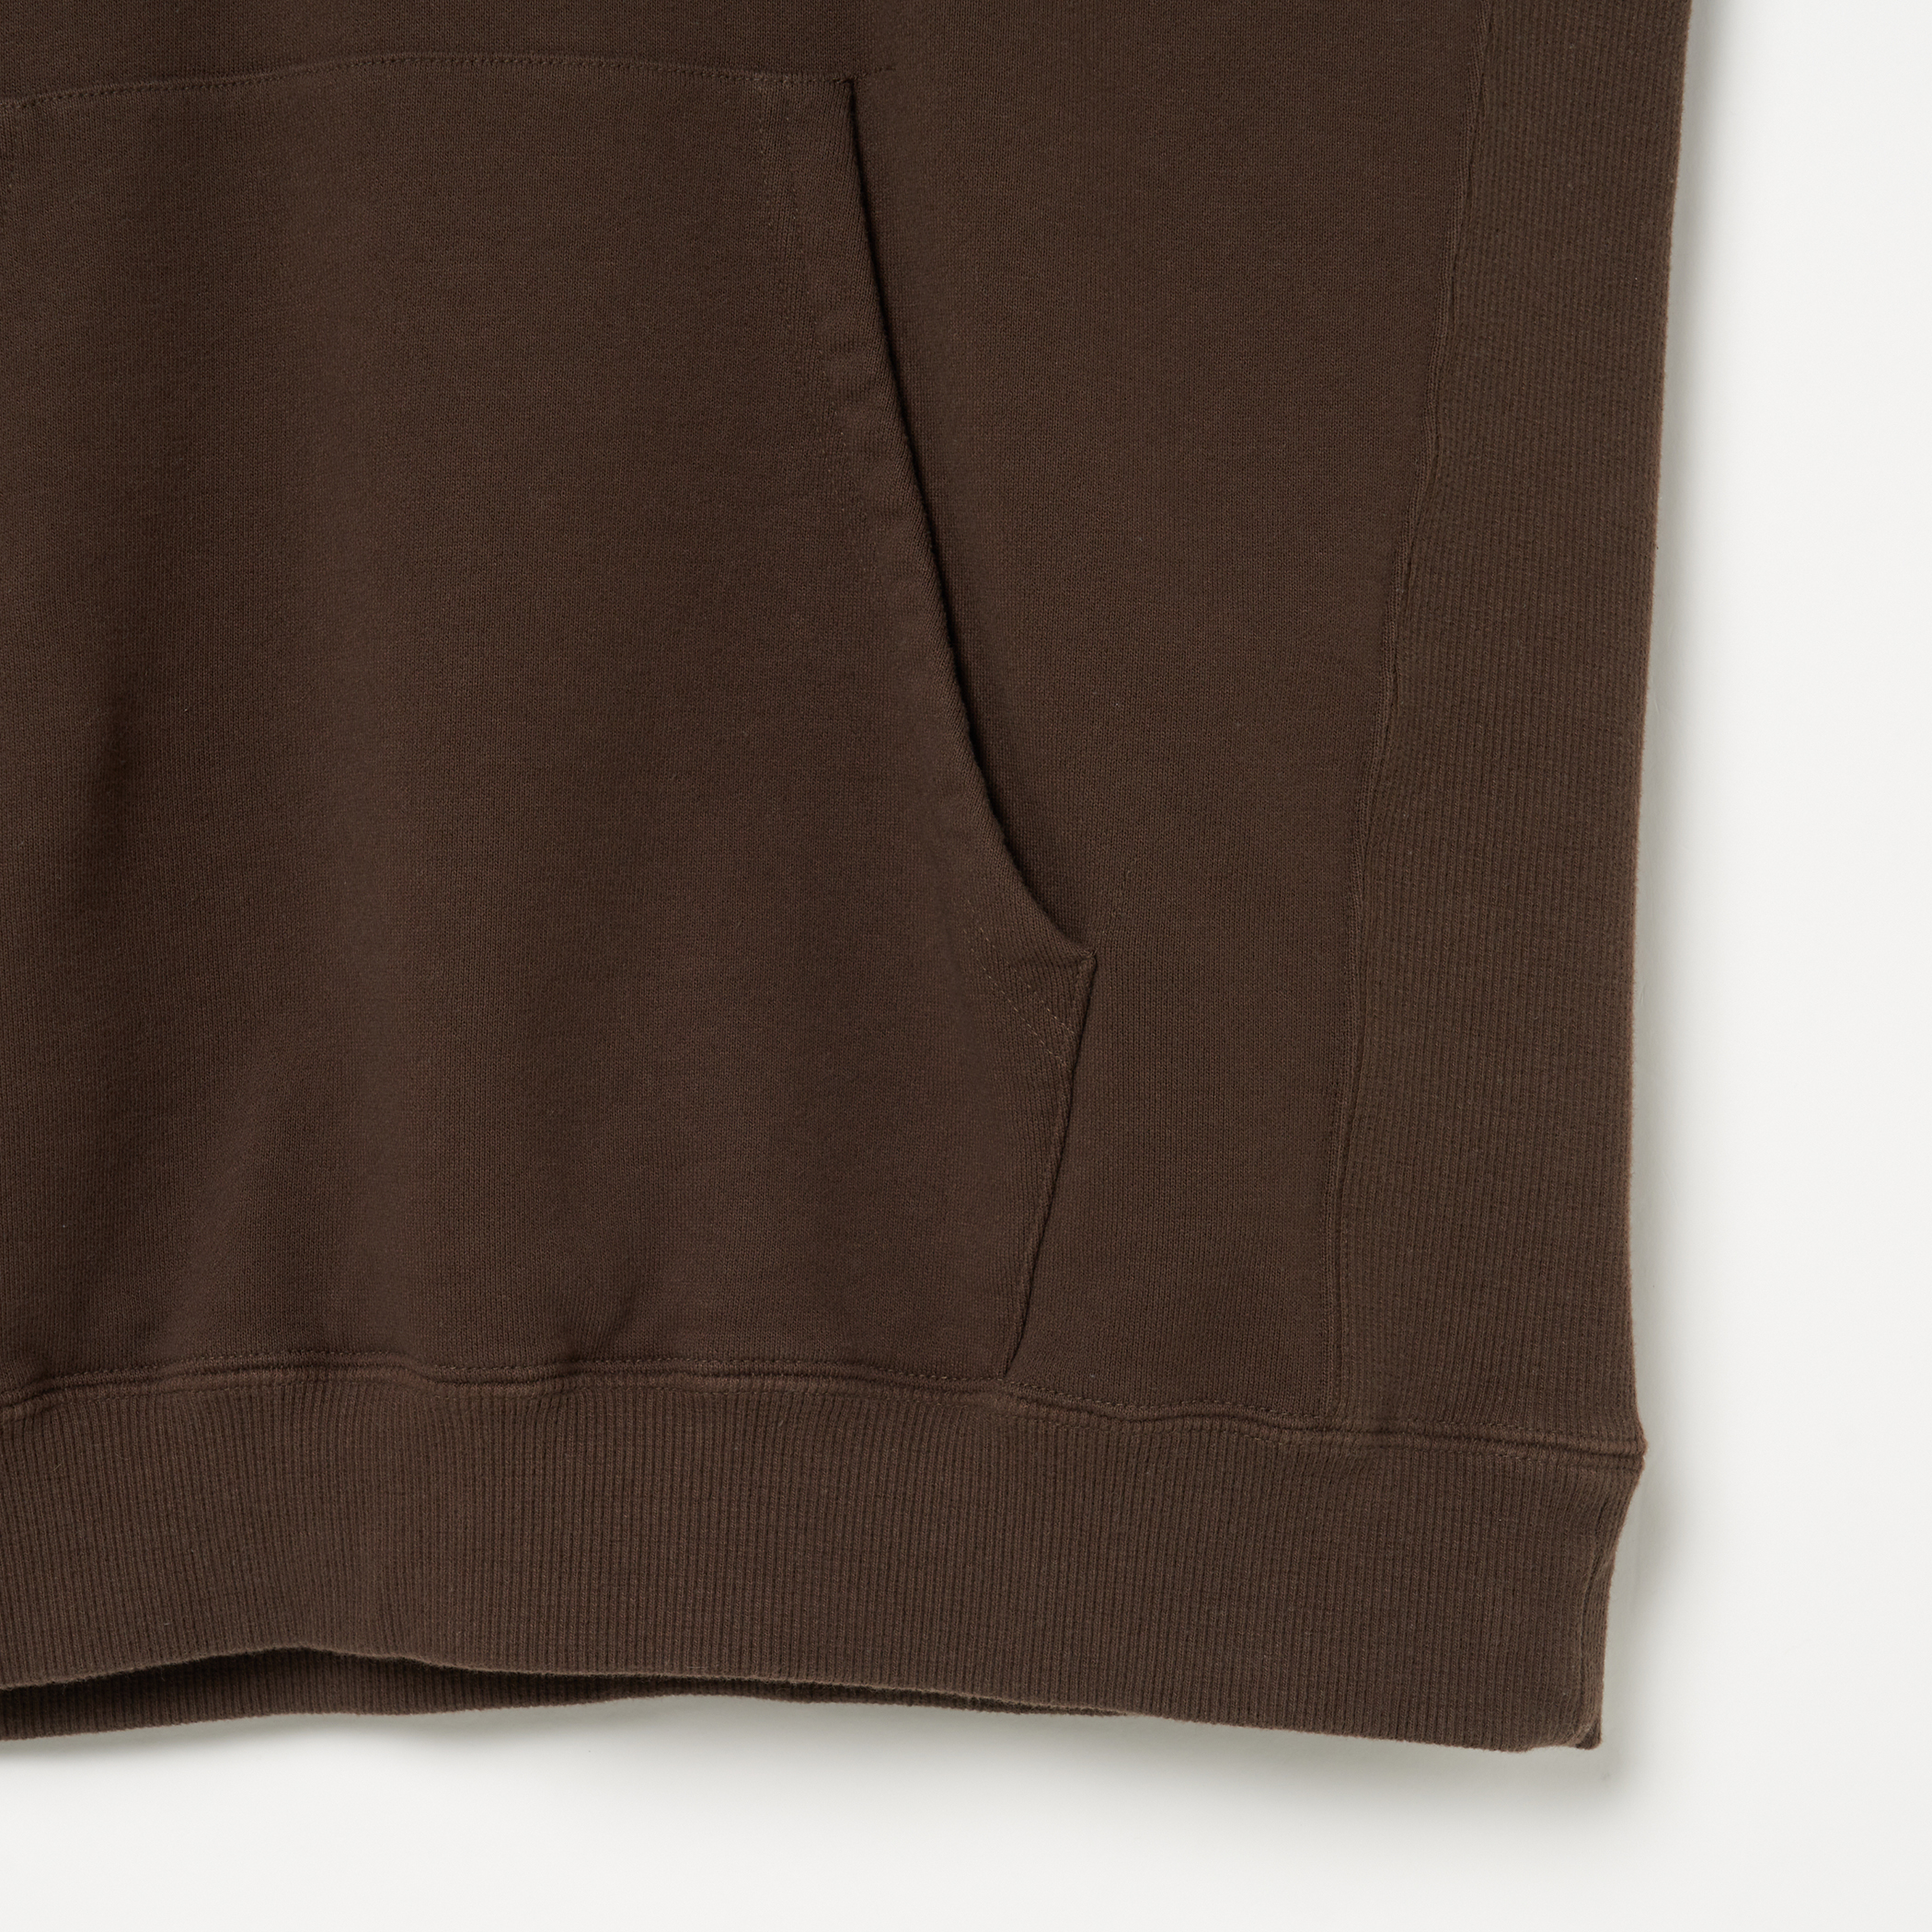 FSO EMBRO HOODIE 詳細画像 Brown 11